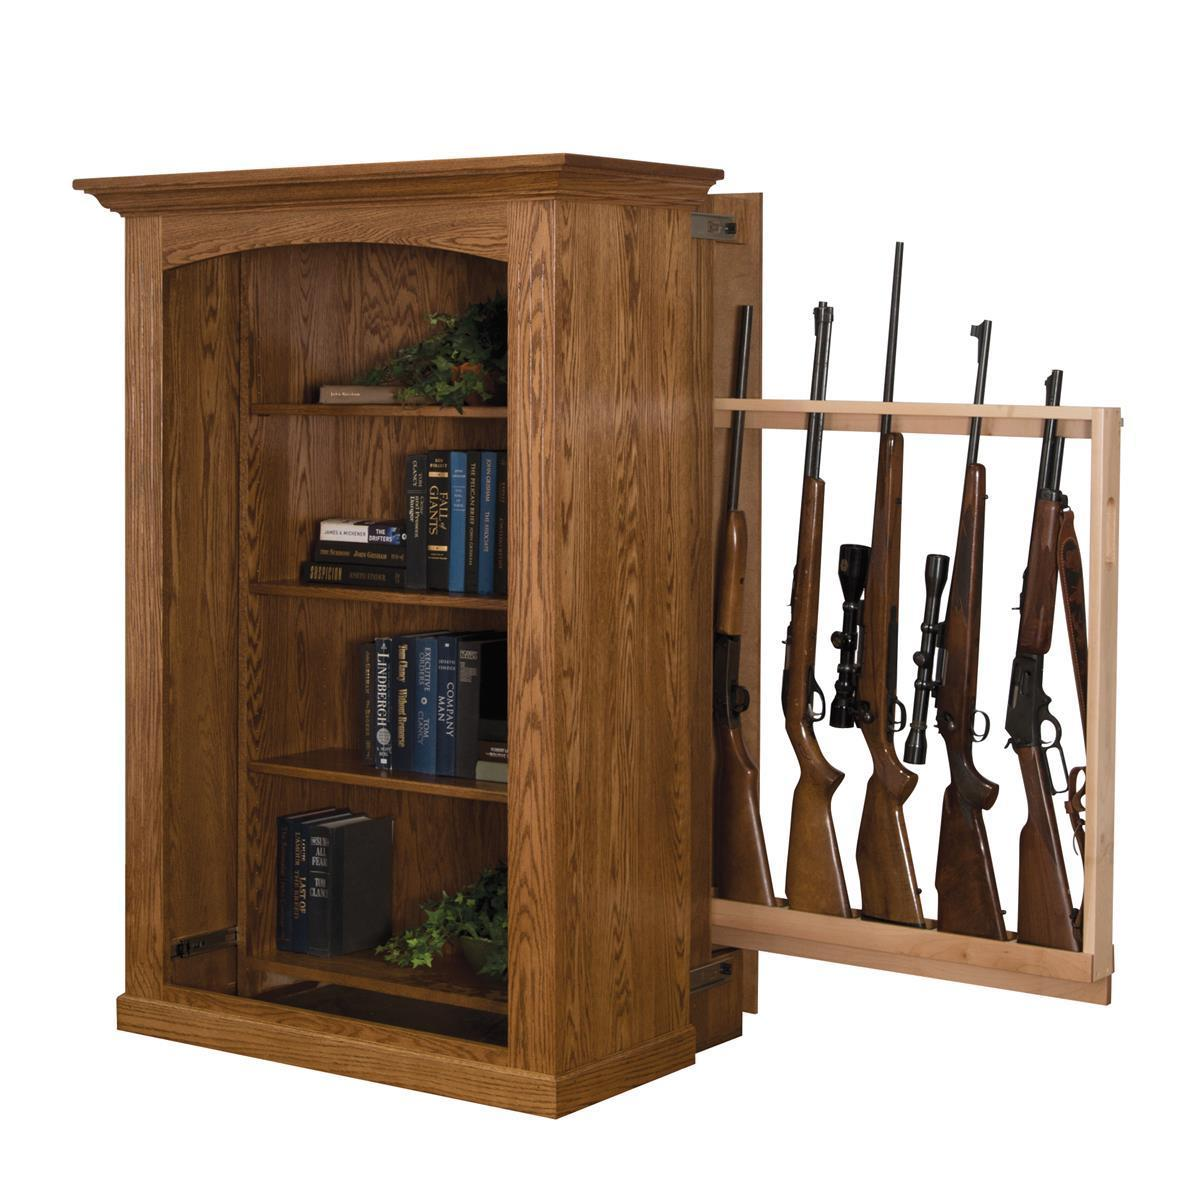 Small Bookcase With Hidden Gun Cabinet From DutchCrafters